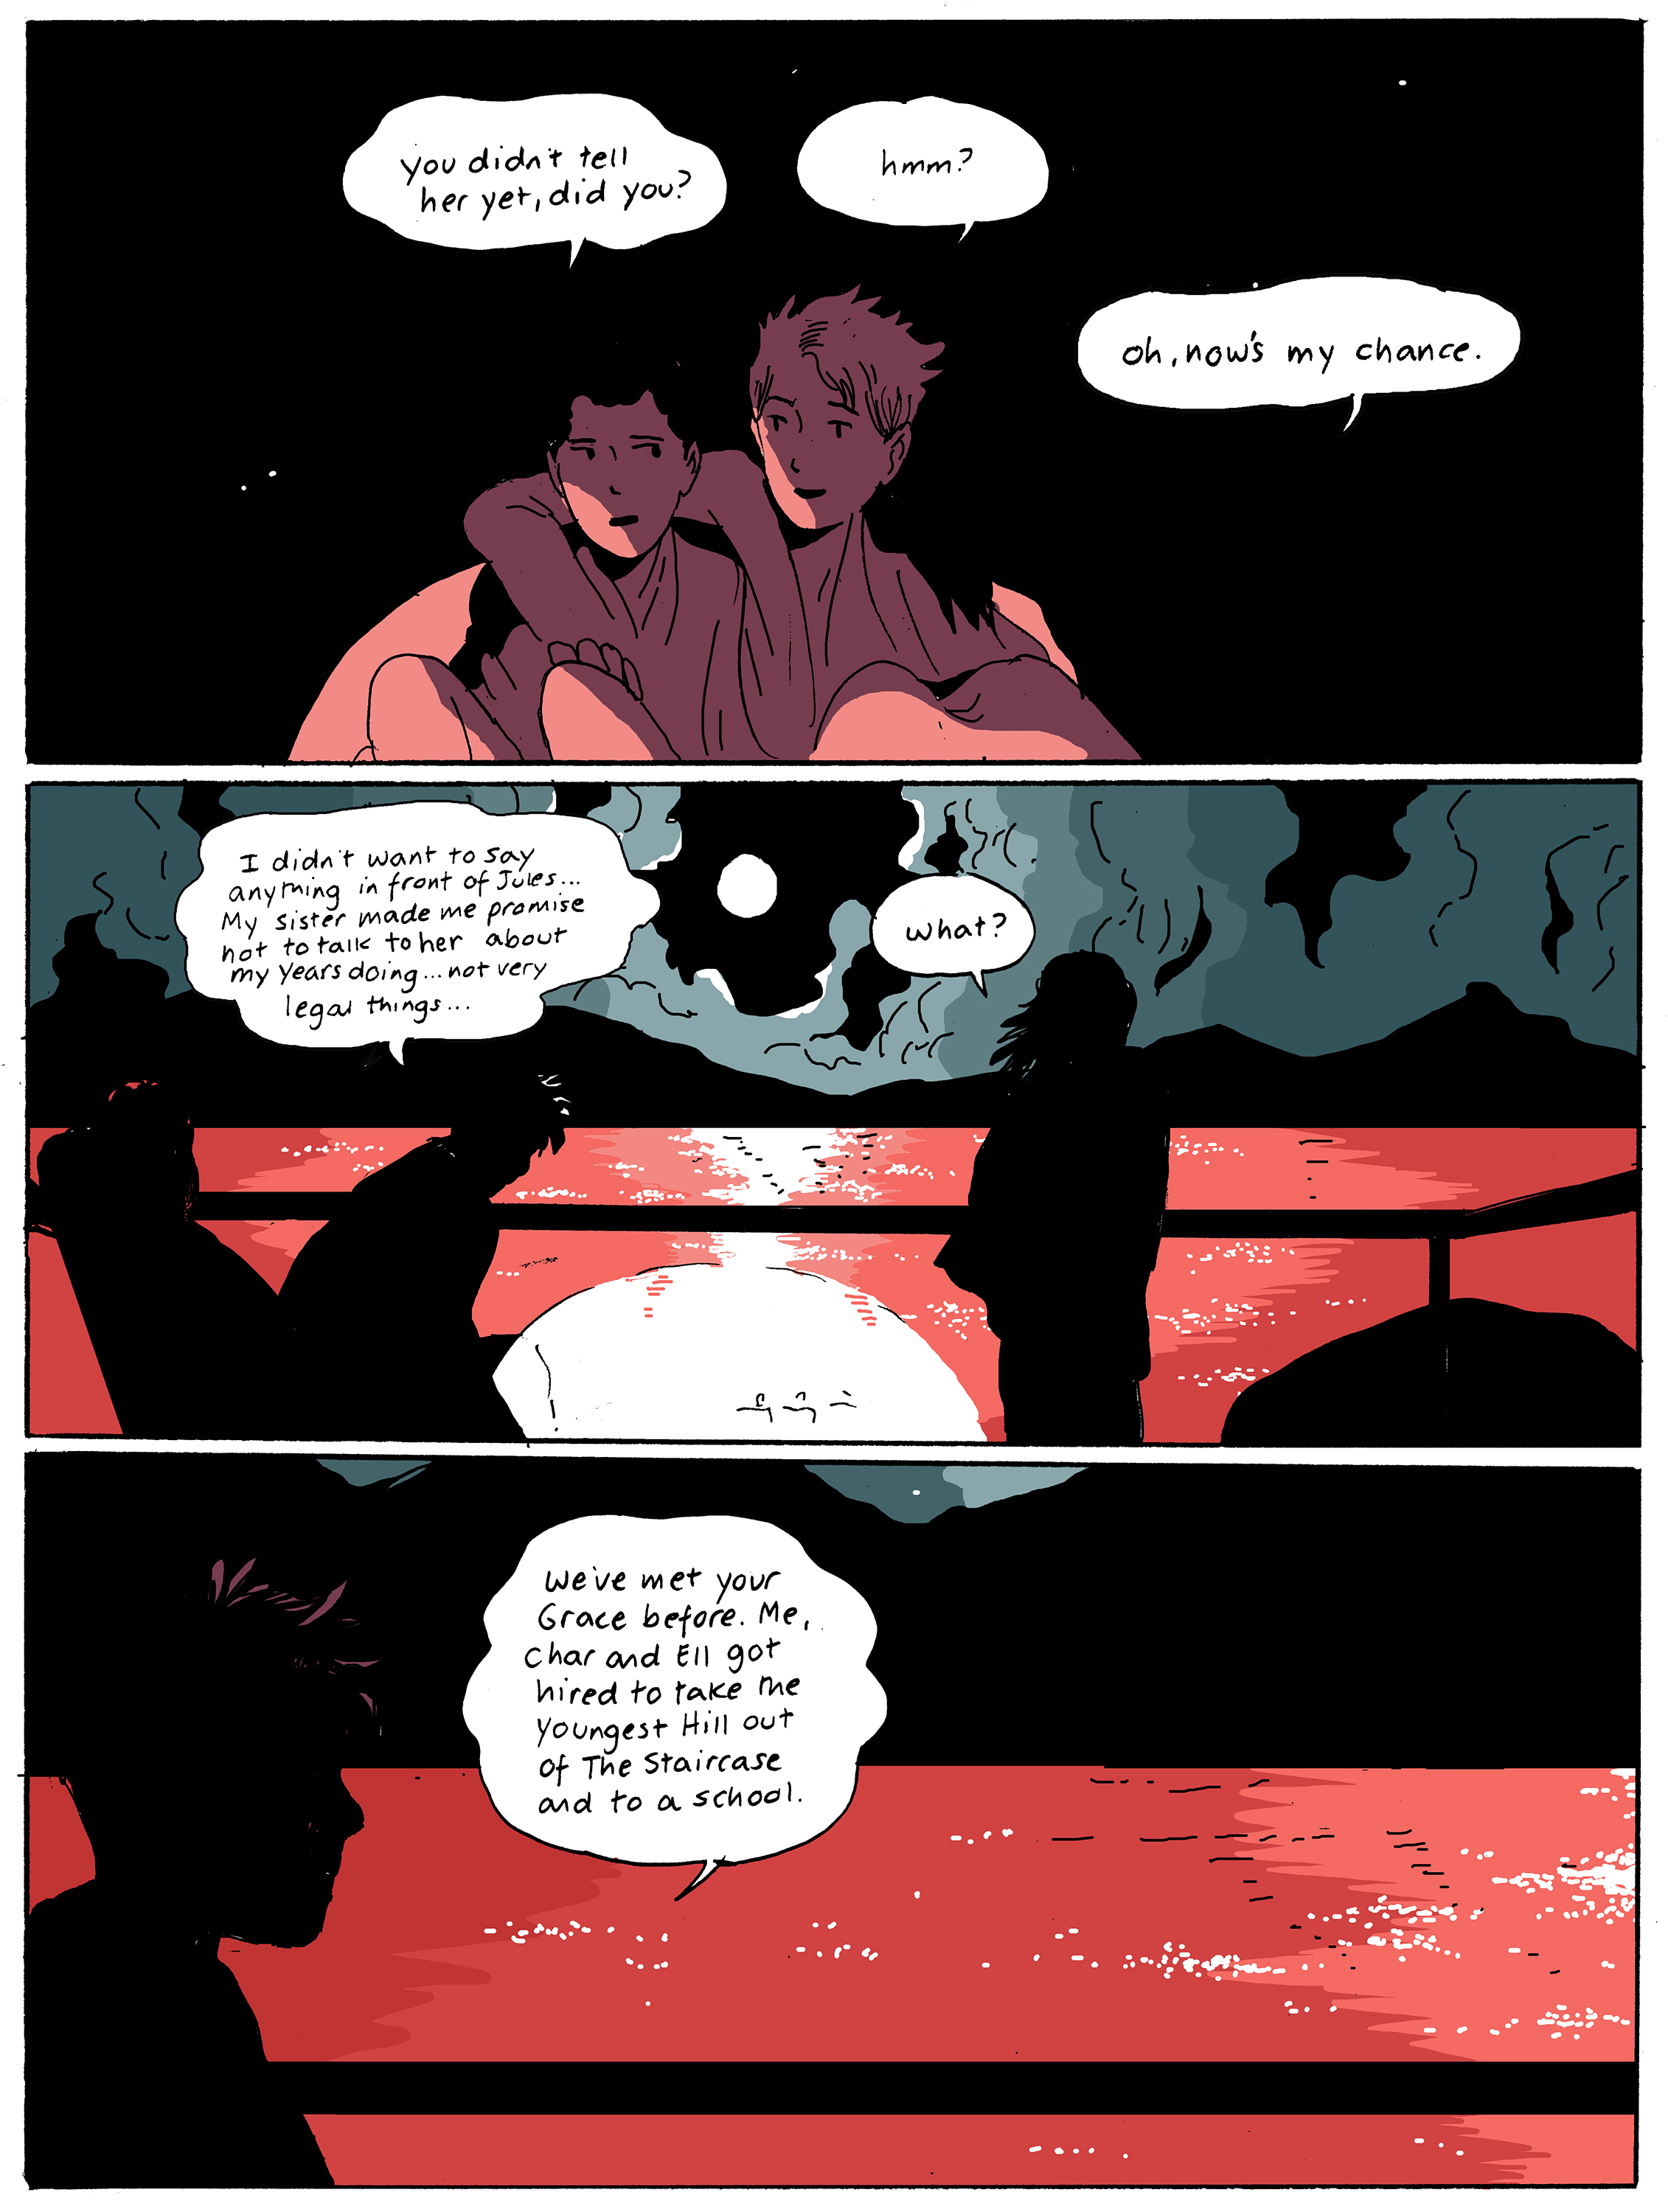 chapter14_page22.jpg